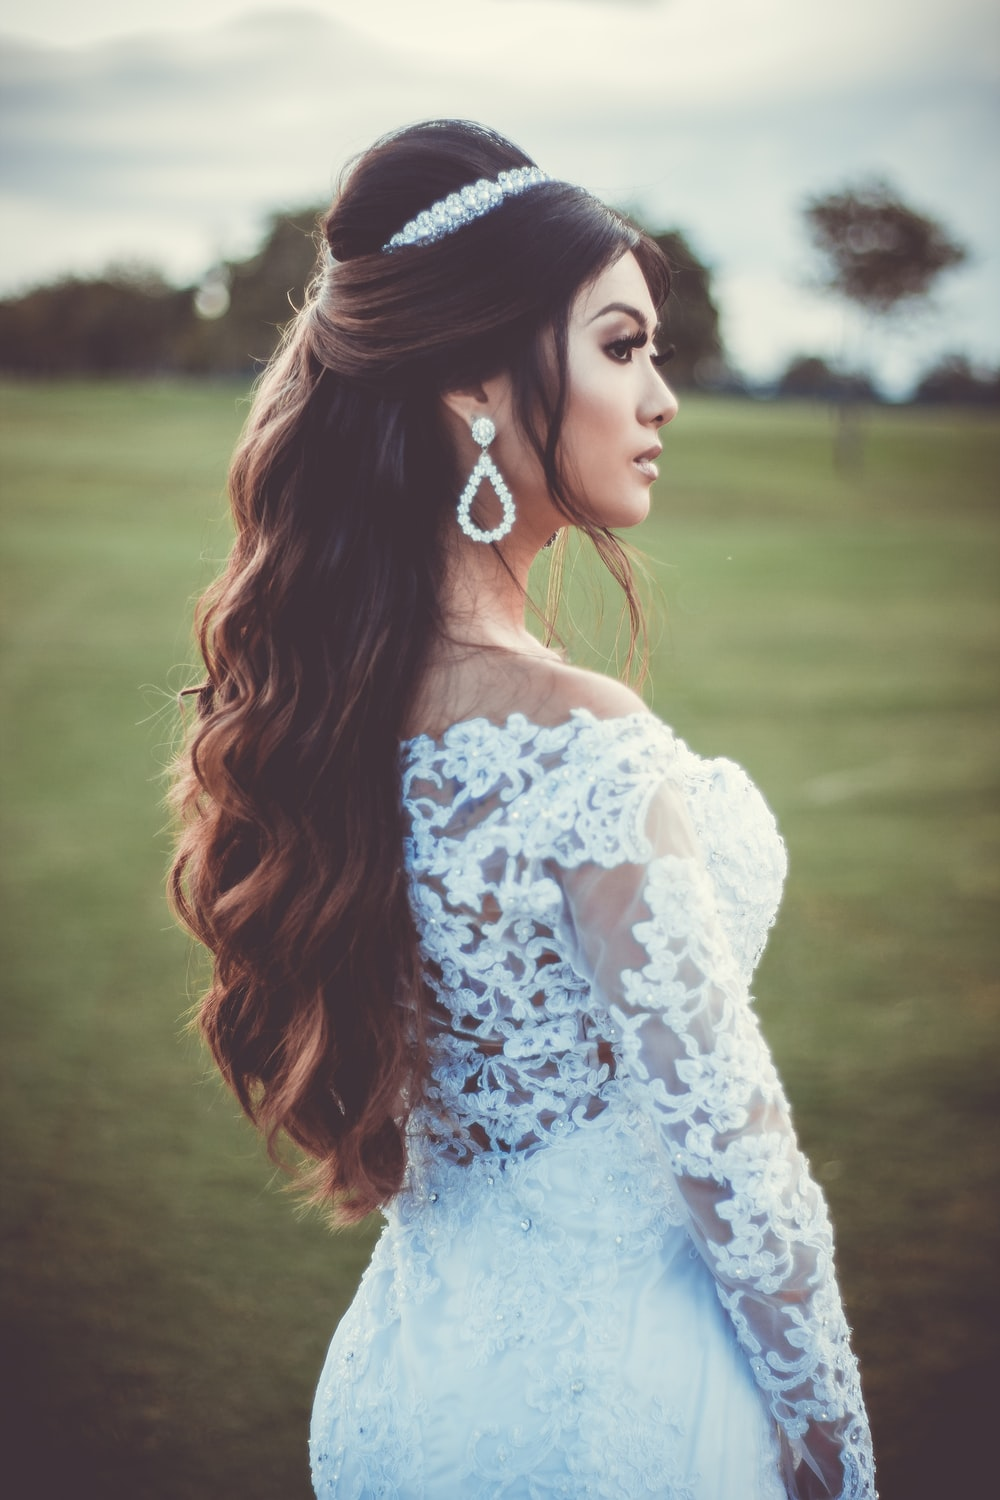 woman in white wedding dress standing on focus photography